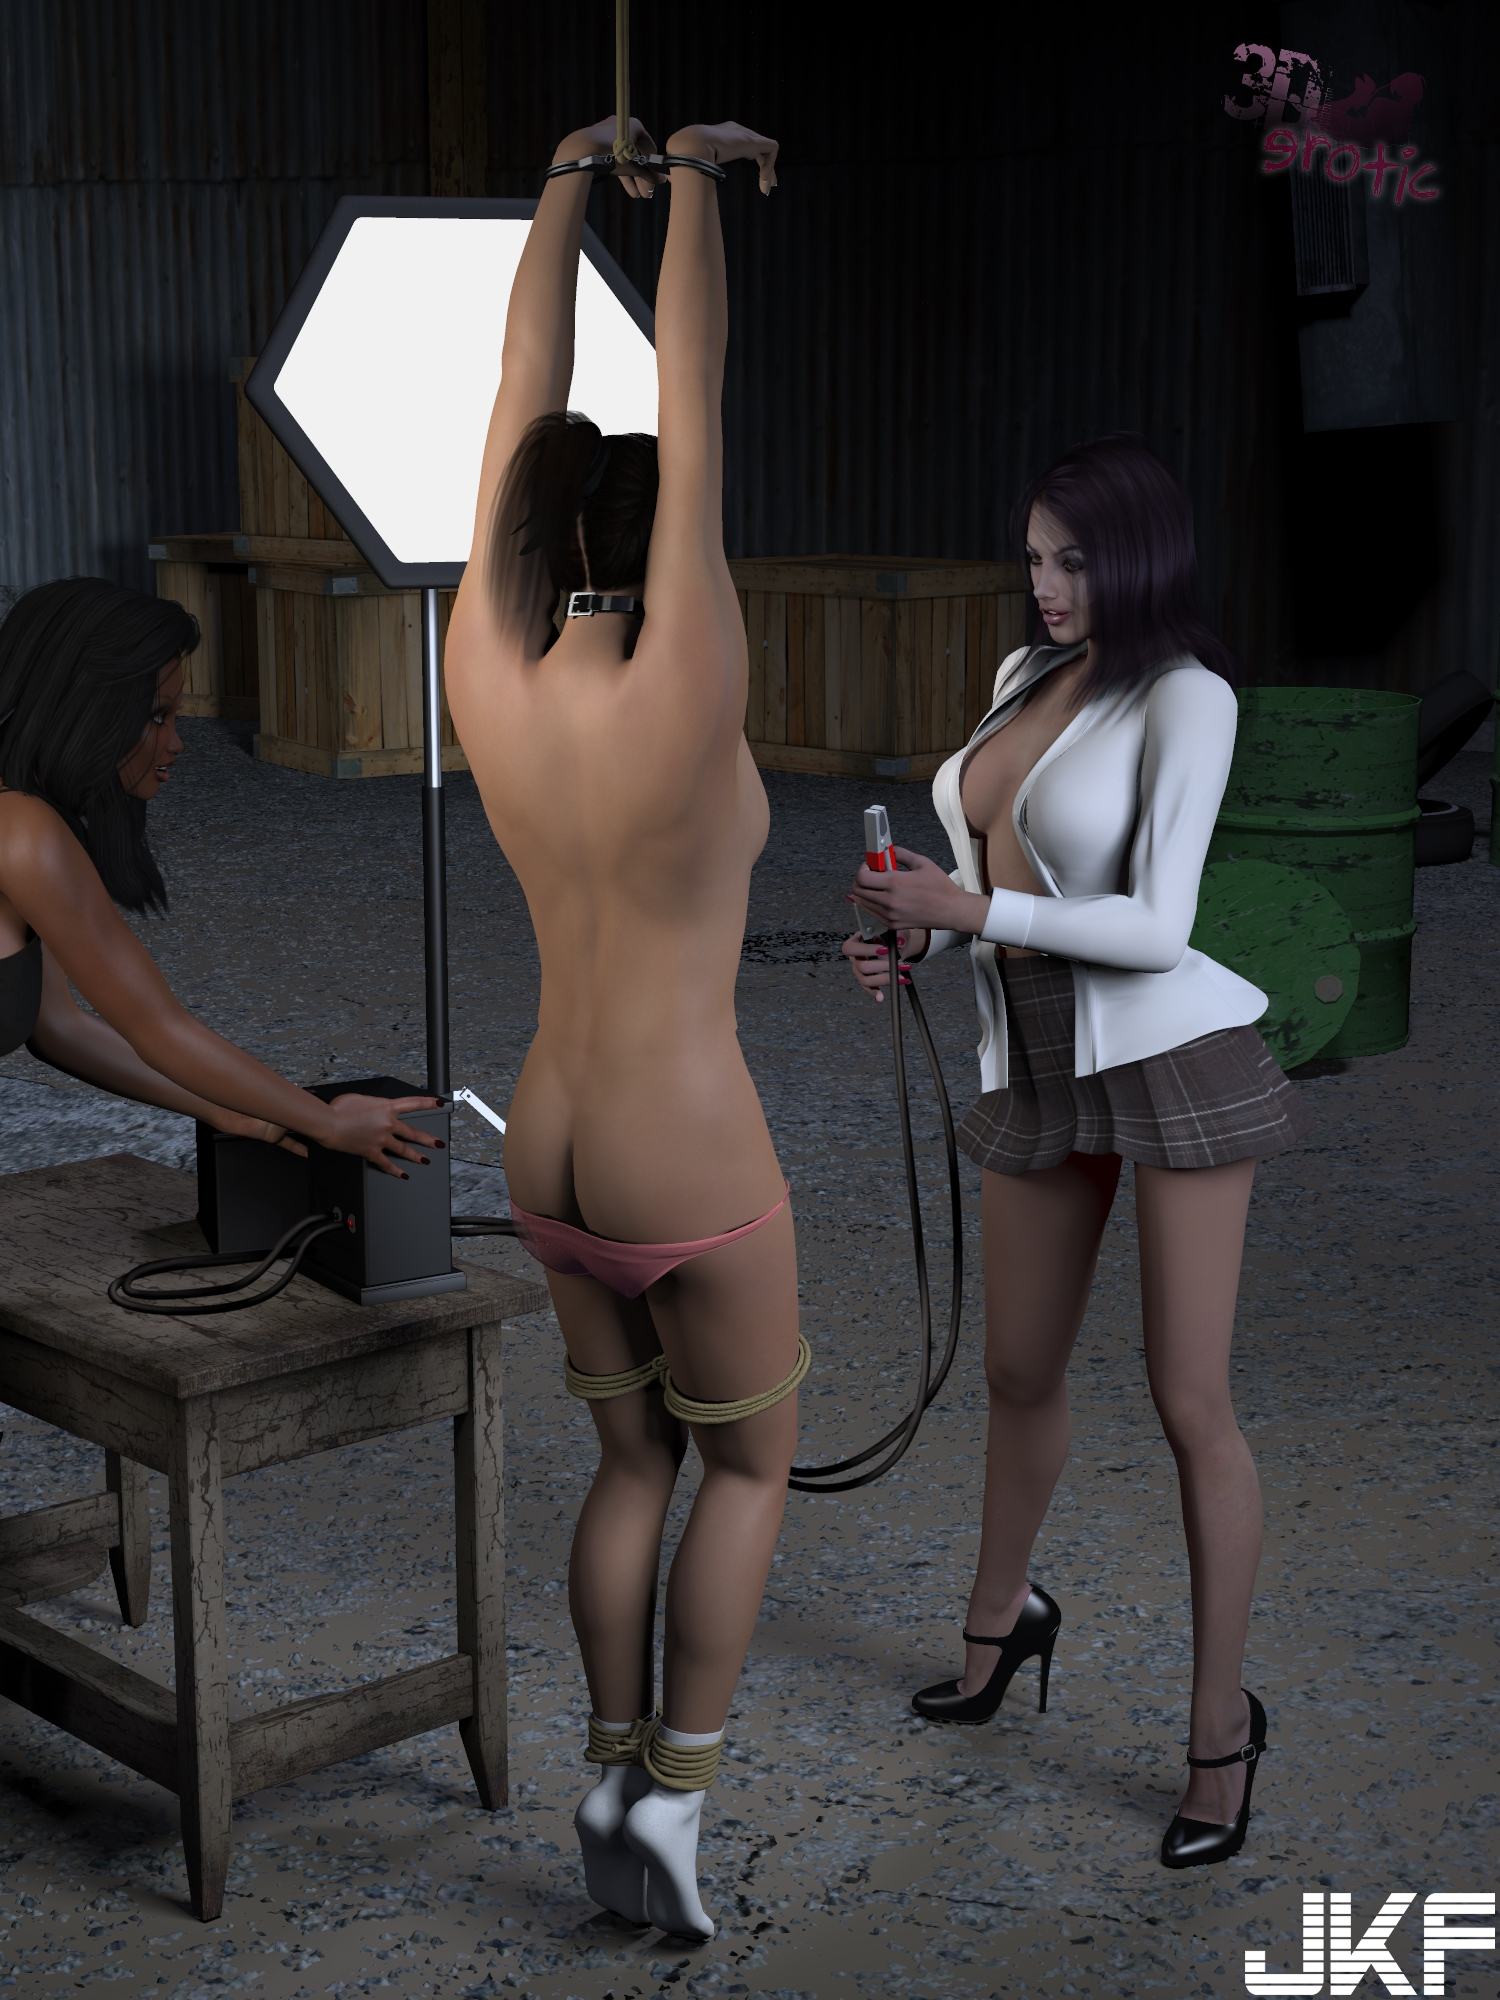 law_and_torture_sbu_039_by_3derotic-day9zog.jpg